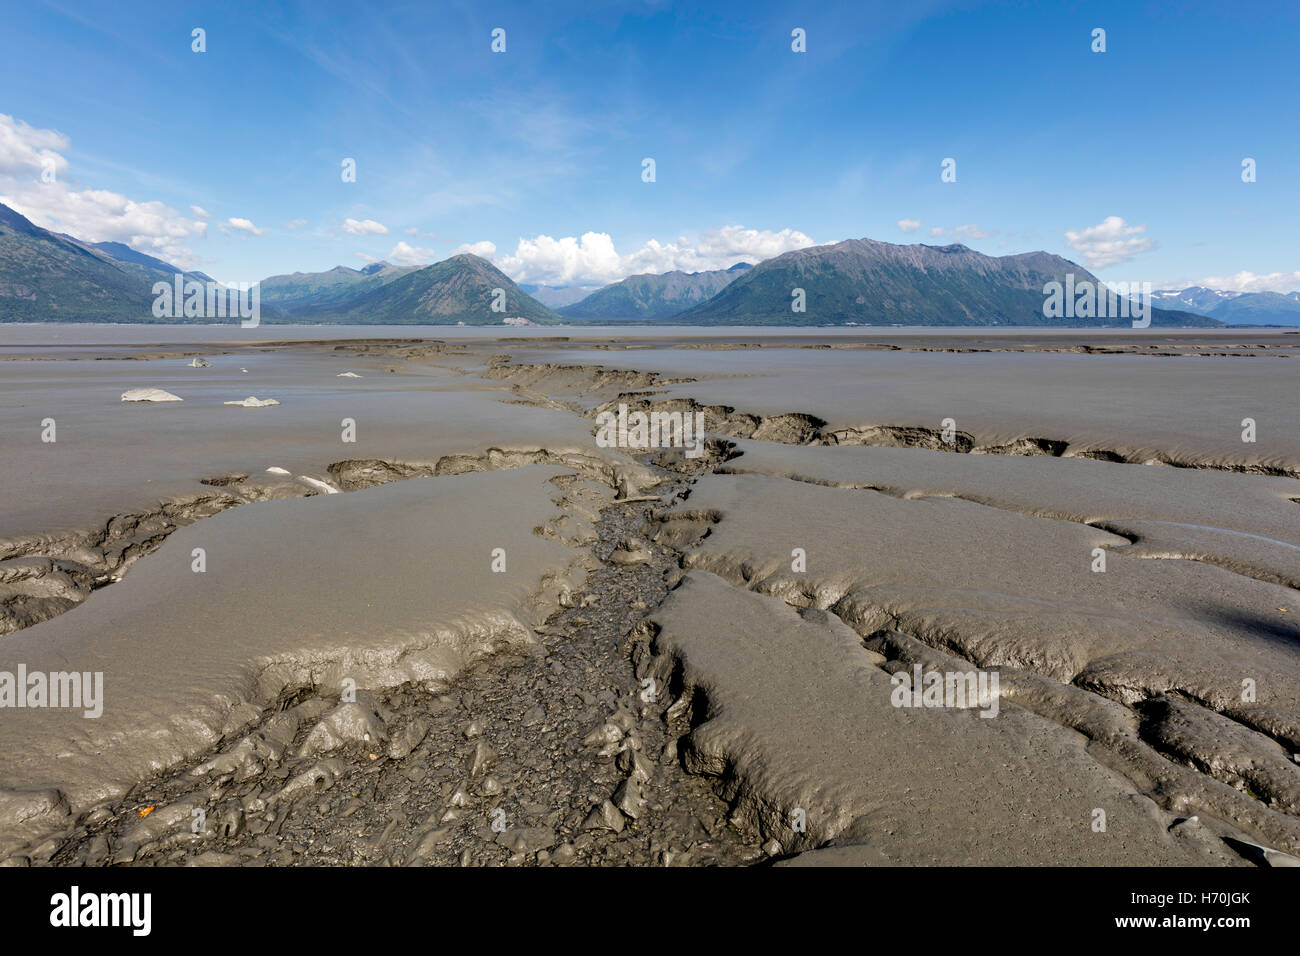 Tidal mudflats of Turnagain Arm looking toward the Chugach Mountains from Hope in Southcentral Alaska. - Stock Image